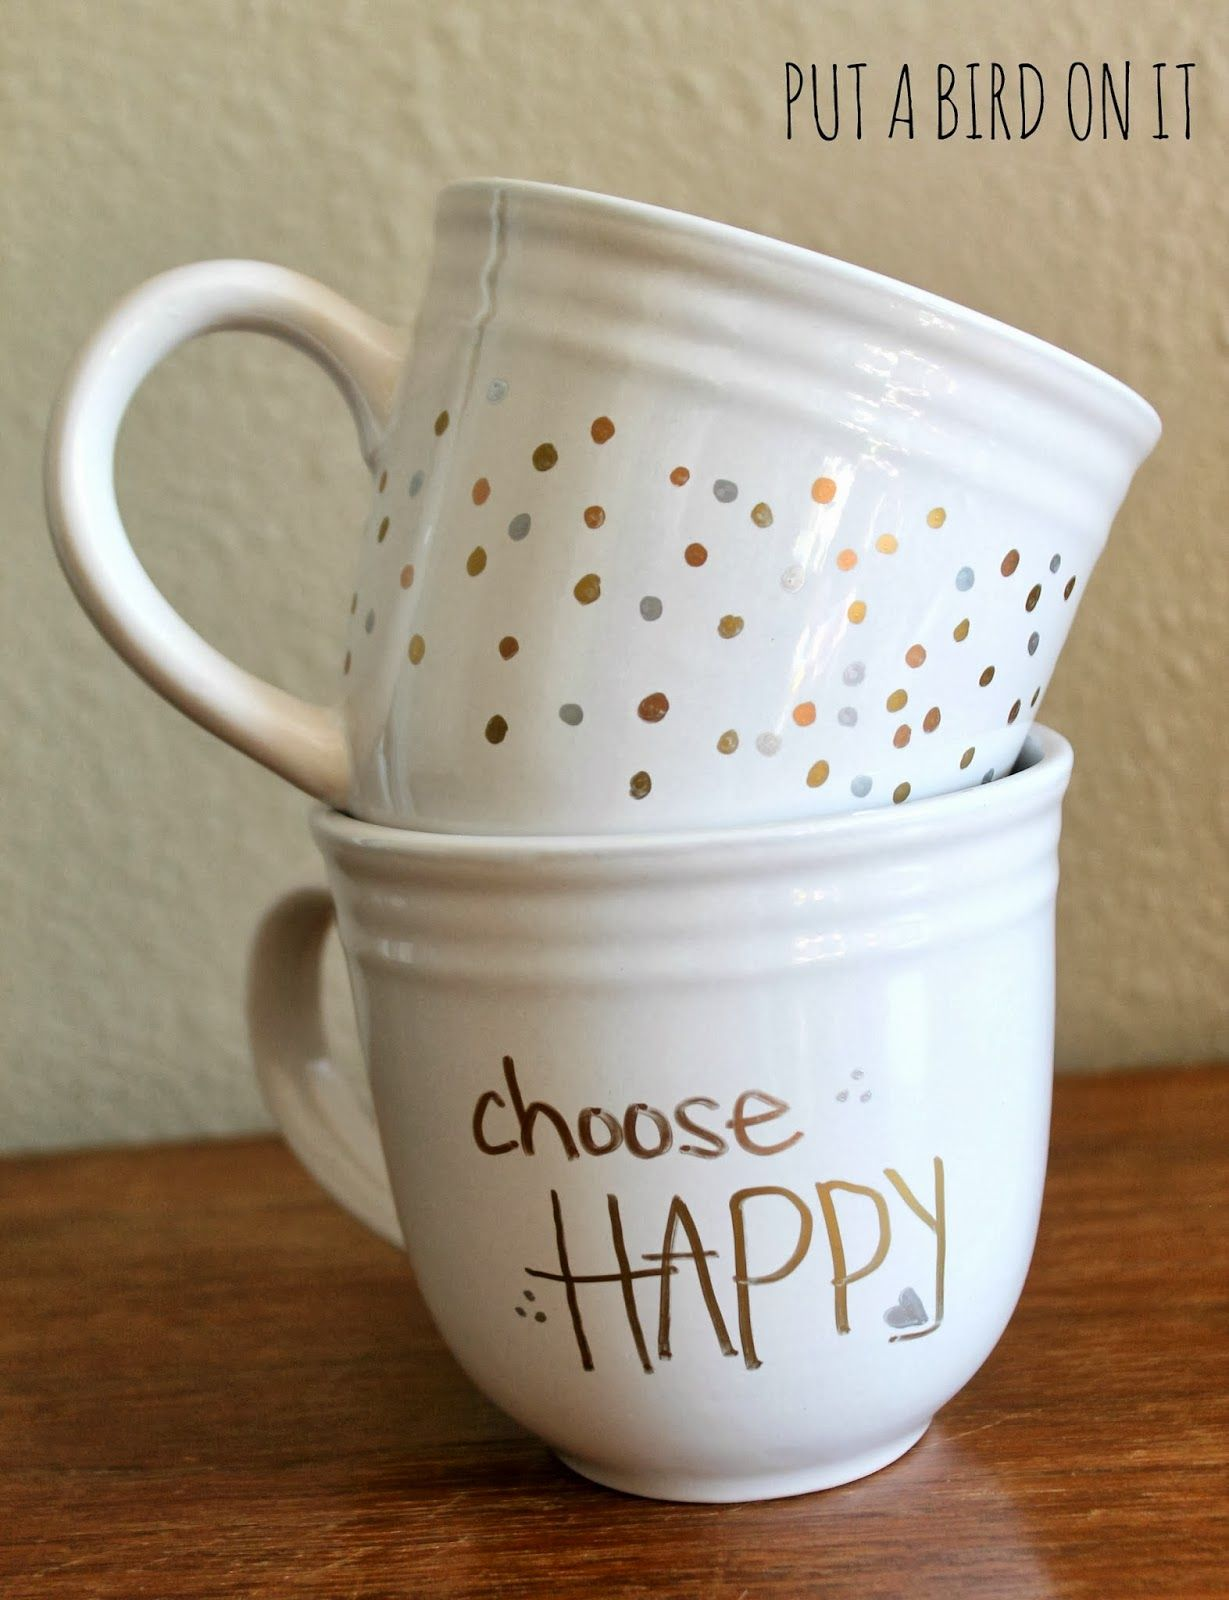 Stylo Pour Dessiner Sur Tasse best homemade mothers day gifts - so many great ideas | diy